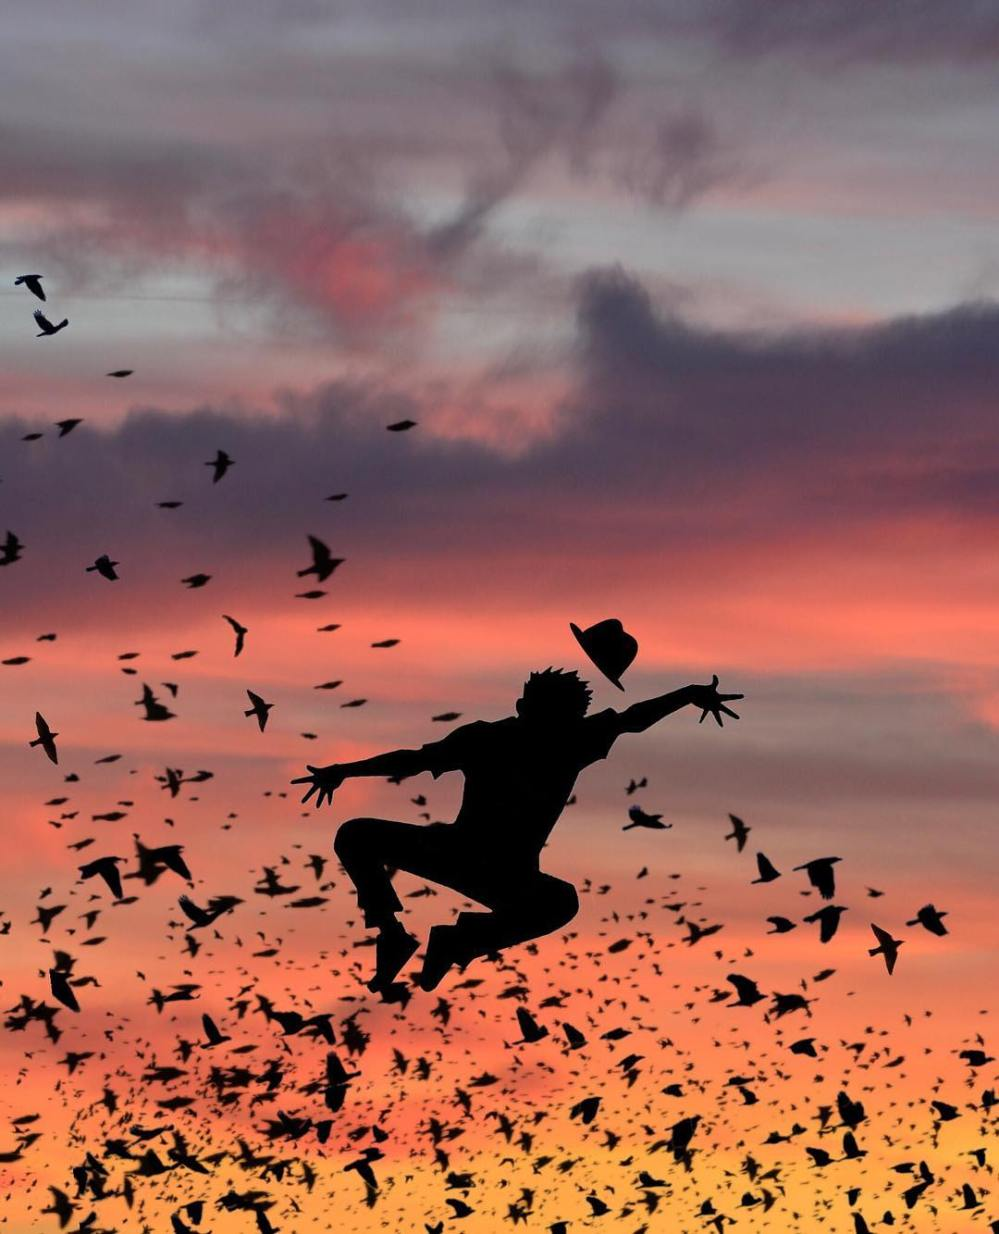 Sunset Dreams Dominic Liam Photography #artpeople